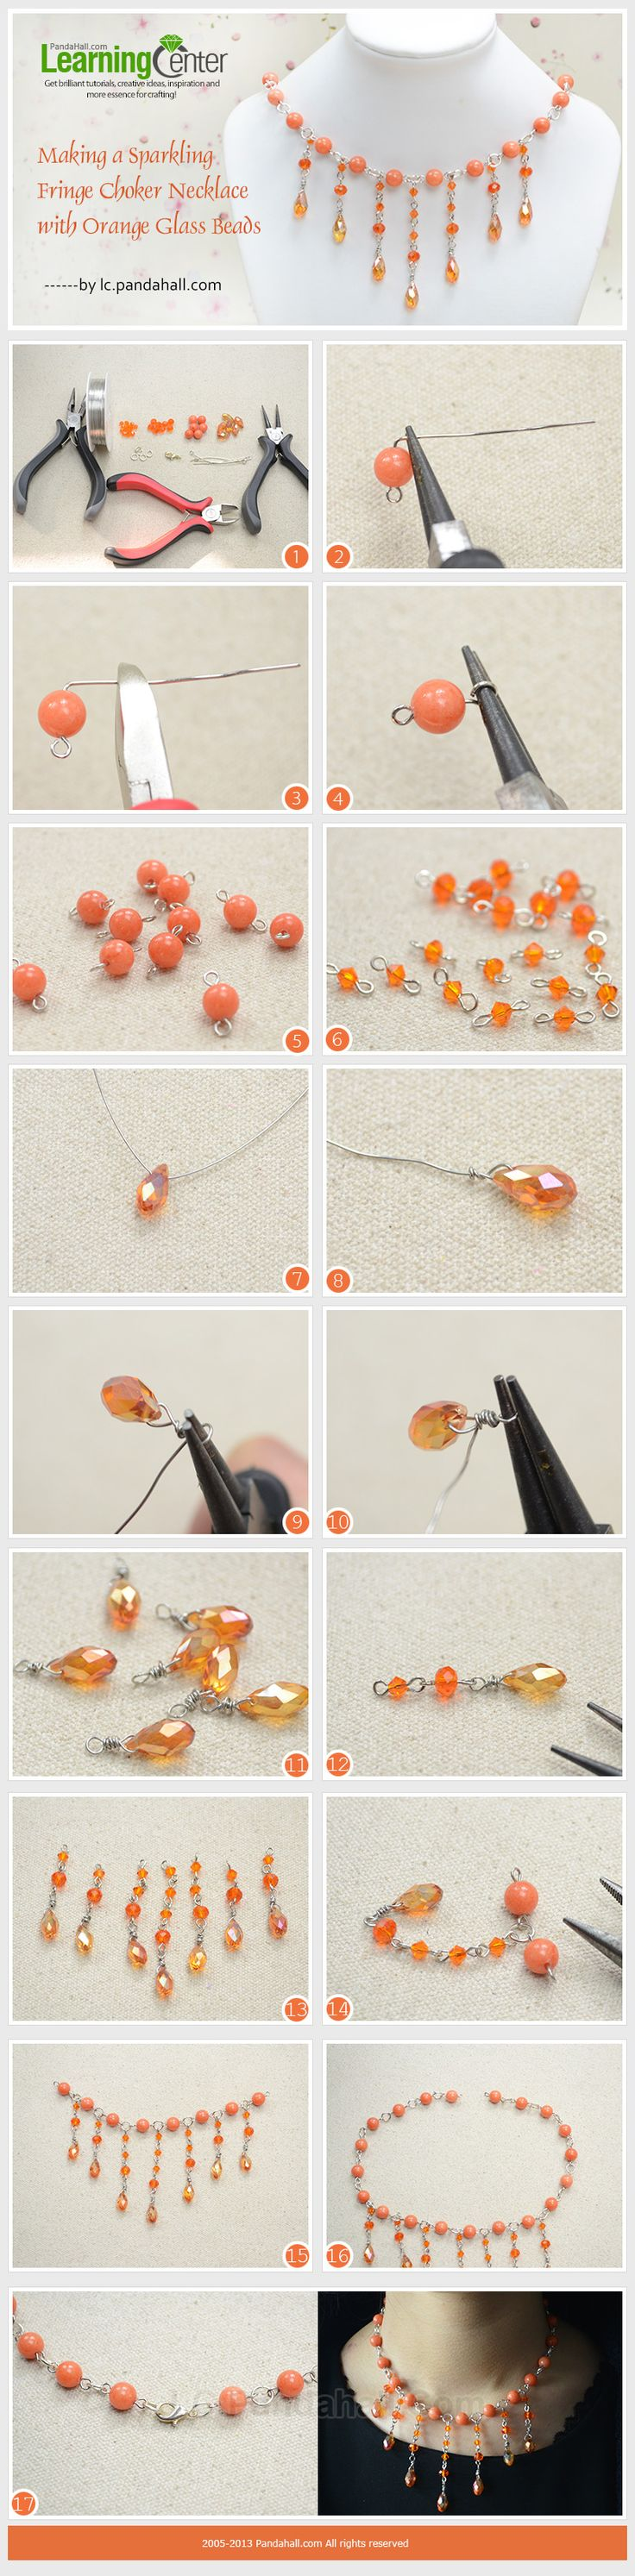 Making a Sparkling Fringe Choker Necklace with Orange Glass Beads